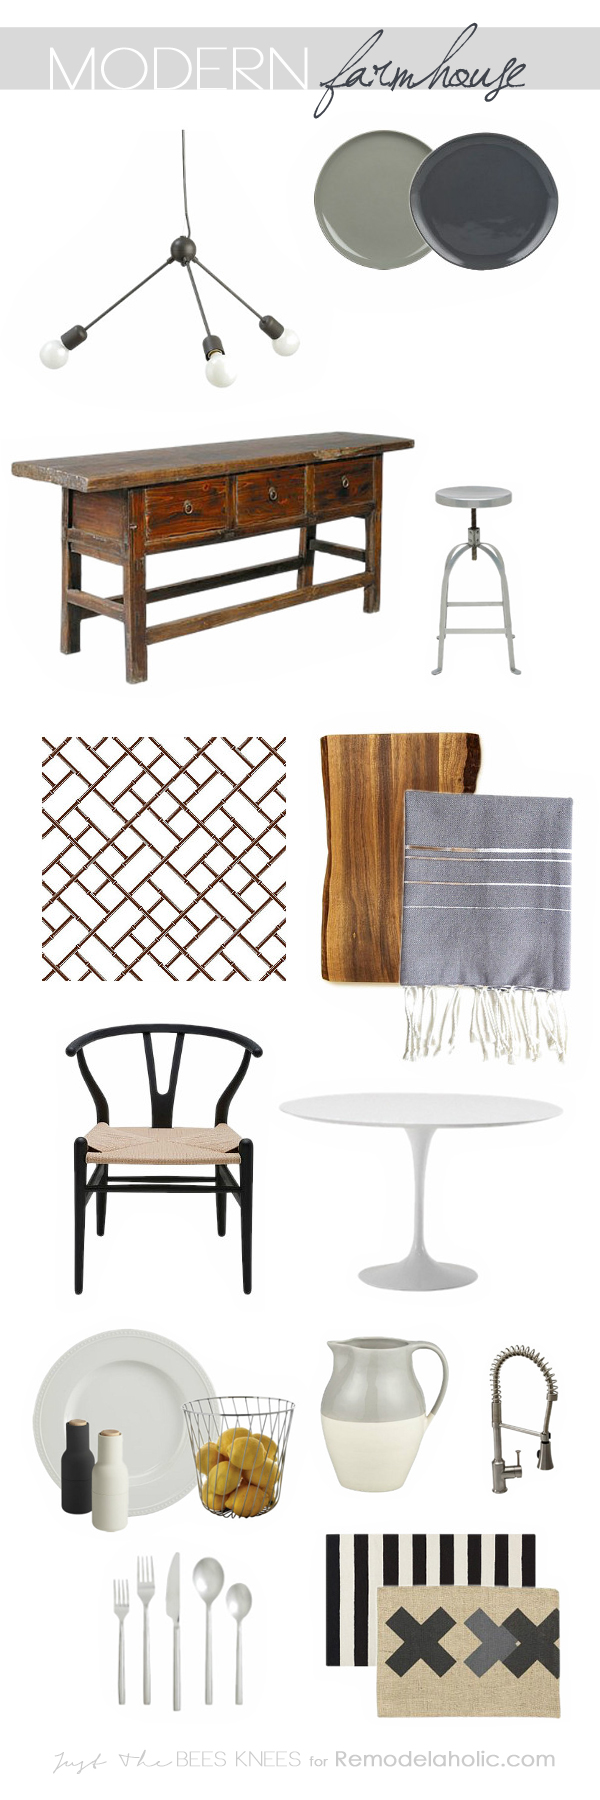 Modern farmhouse style blends the old with the new: clean lines and crisp white mix with rustic weathered wood and metal to create a homey yet chic style for your kitchen. Learn the keys to making this style work in your home here!